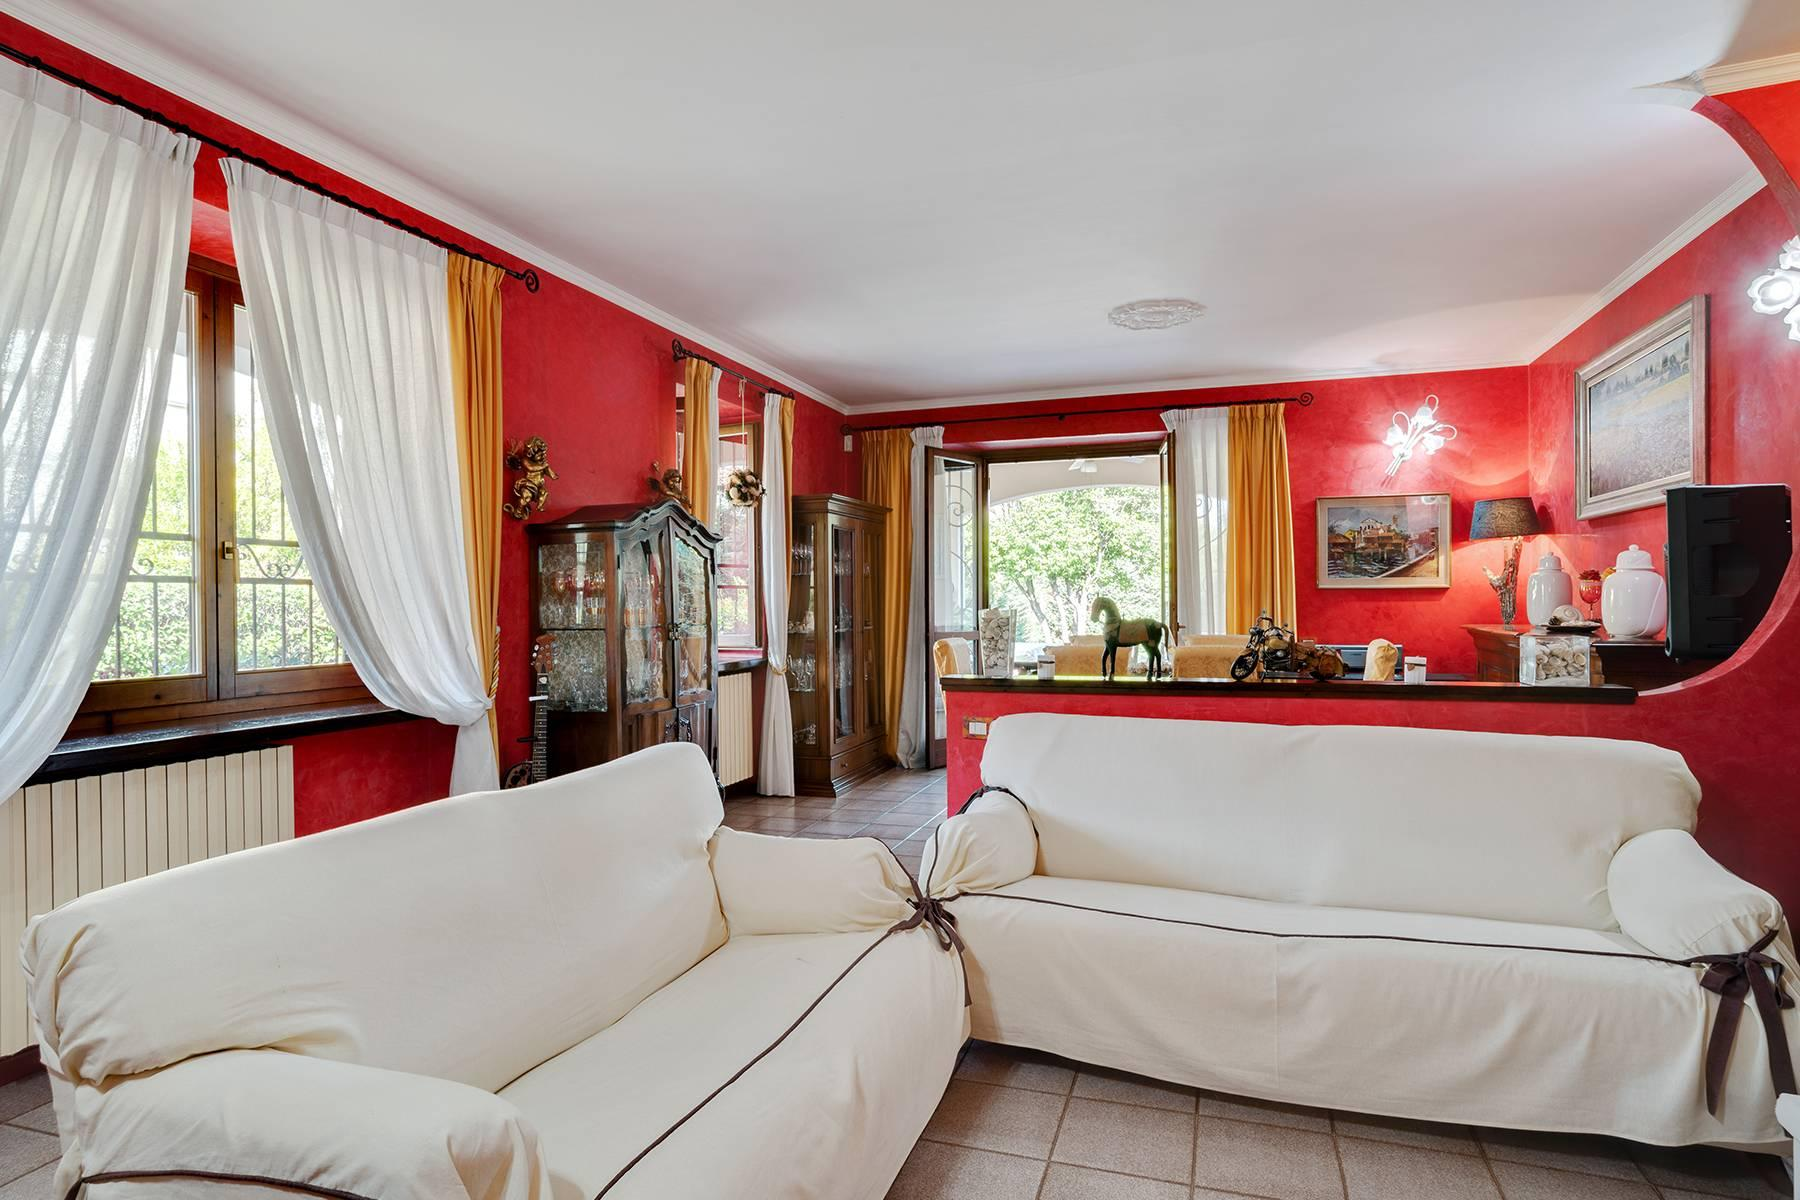 Independent villa a few steps from the heart of Arona - 6